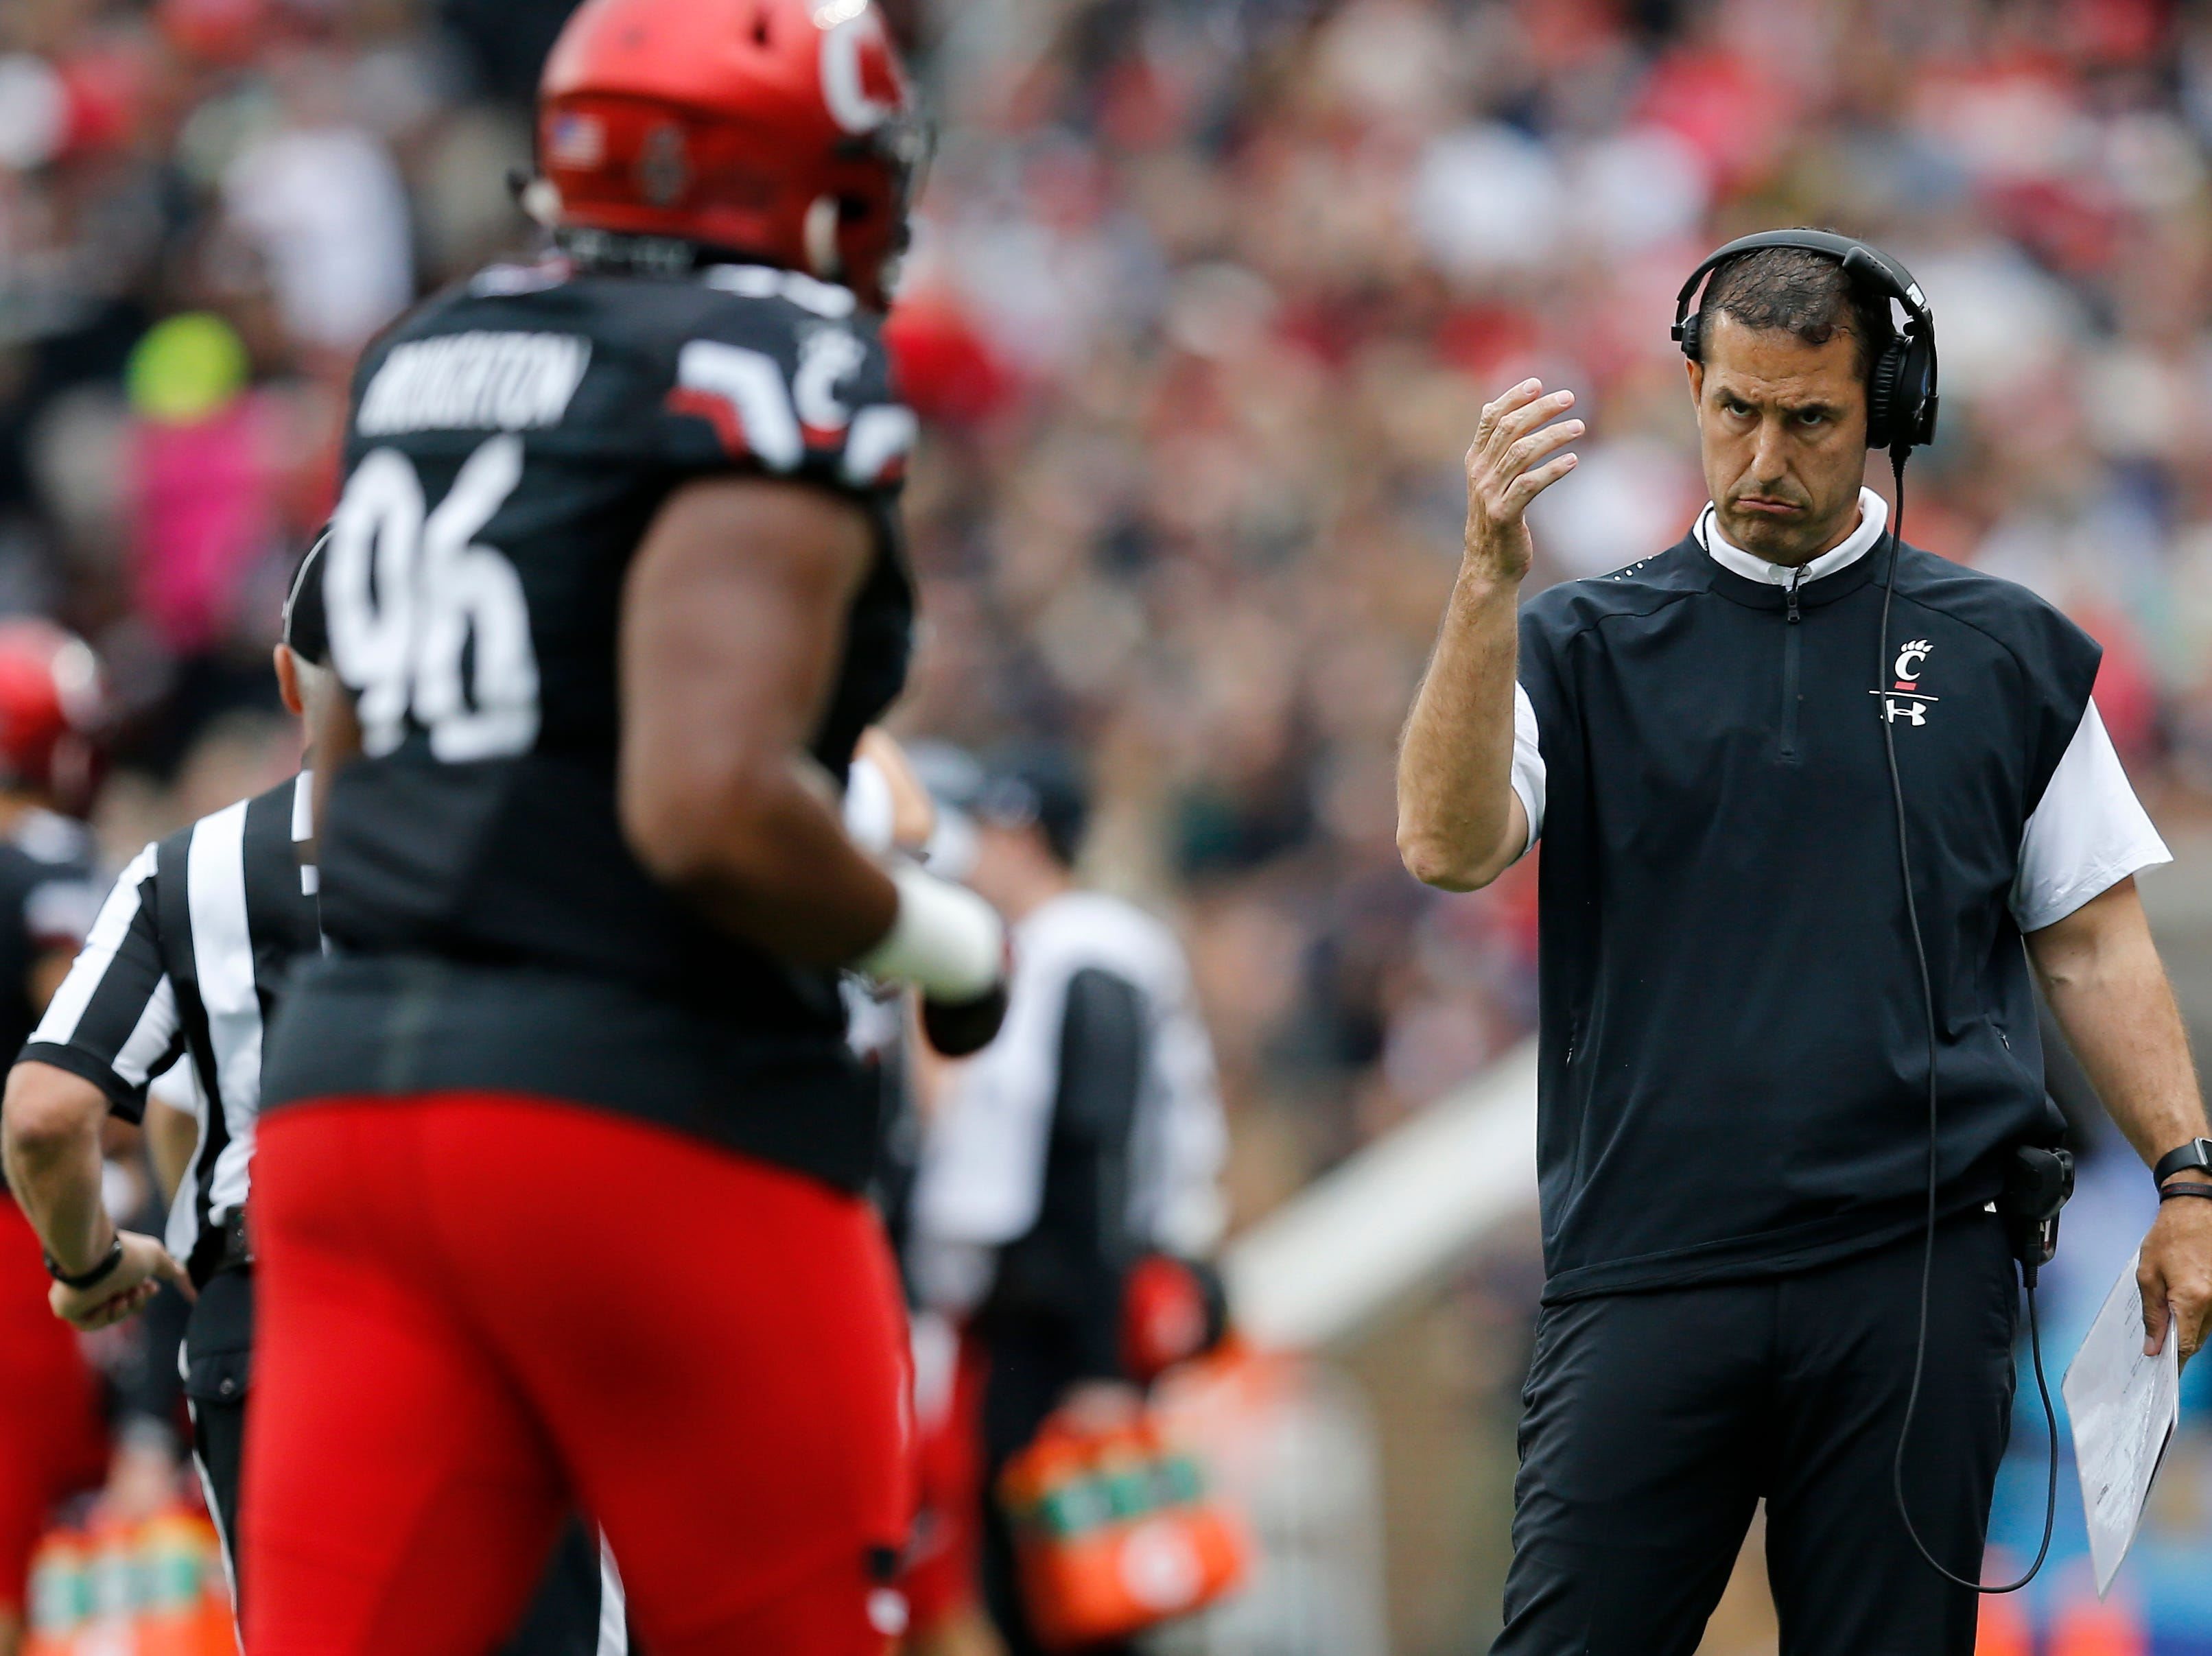 Cincinnati Bearcats head coach Luke Fickell pulls his defense off the field after giving up a touchdown in the first quarter of the NCAA football game between the Cincinnati Bearcats and the Ohio Bobcats at Nippert Stadium on the University of Cincinnati campus in Cincinnati on Saturday, Sept. 22, 2018. The Bobcats led 24-7 at halftime.